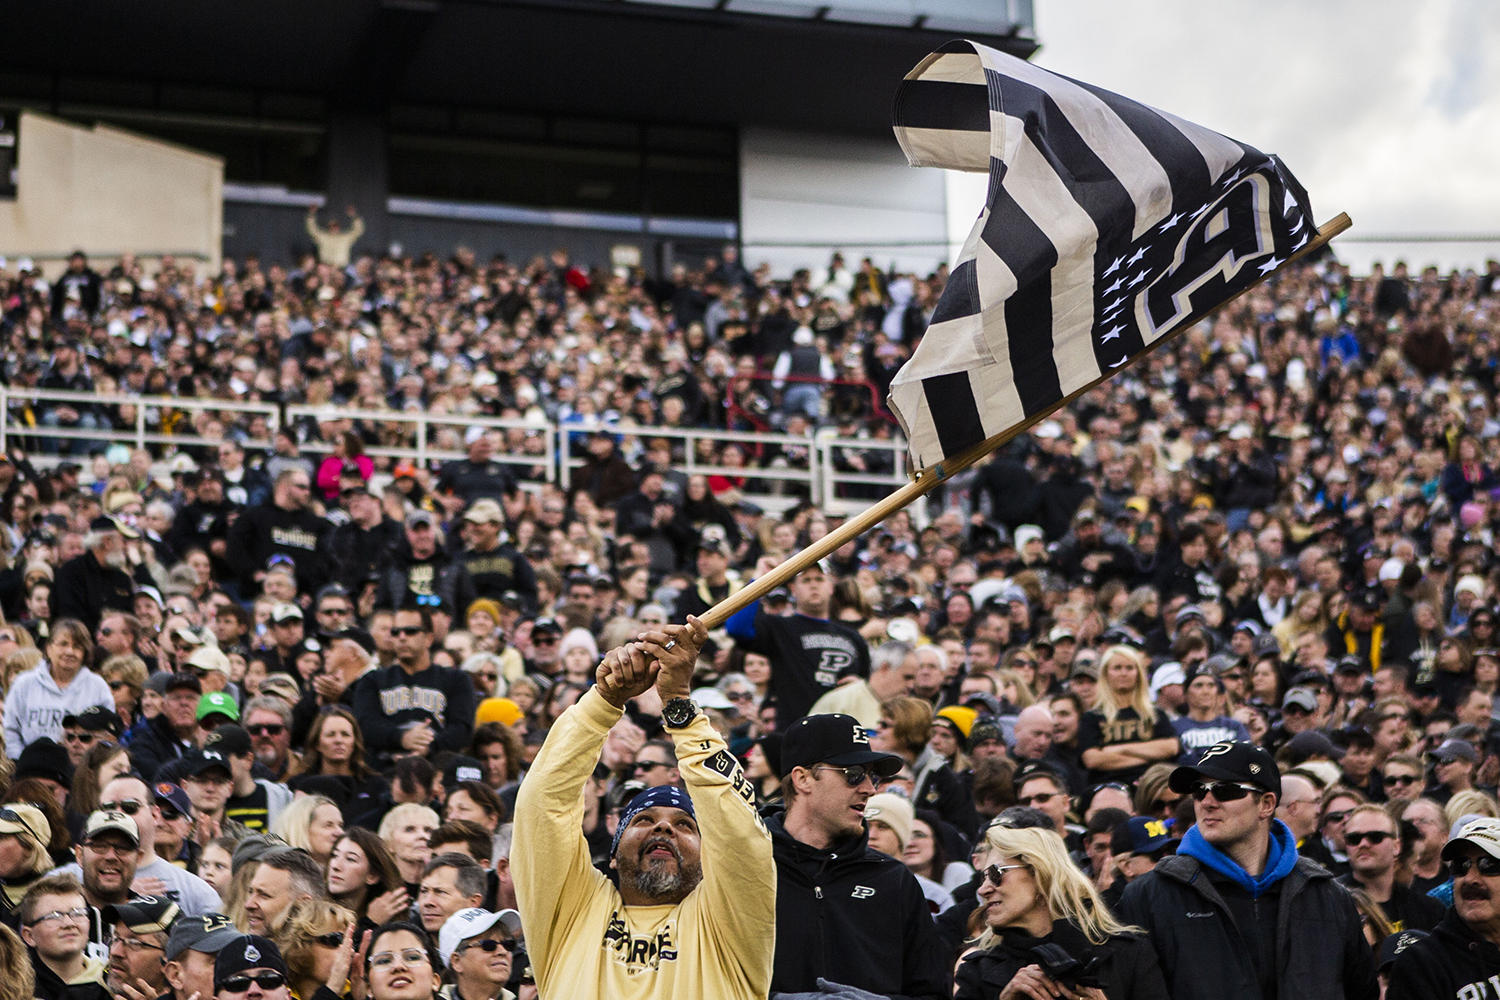 A+Purdue+waves+a+flag+during+the+Iowa%2FPurdue+game+at+Ross-Ade+Stadium+in+West+Lafayette%2C+Ind.+on+Saturday%2C+November+3%2C+2018.+The+Boilermakers+defeated+the+Hawkeyes+38-36.+